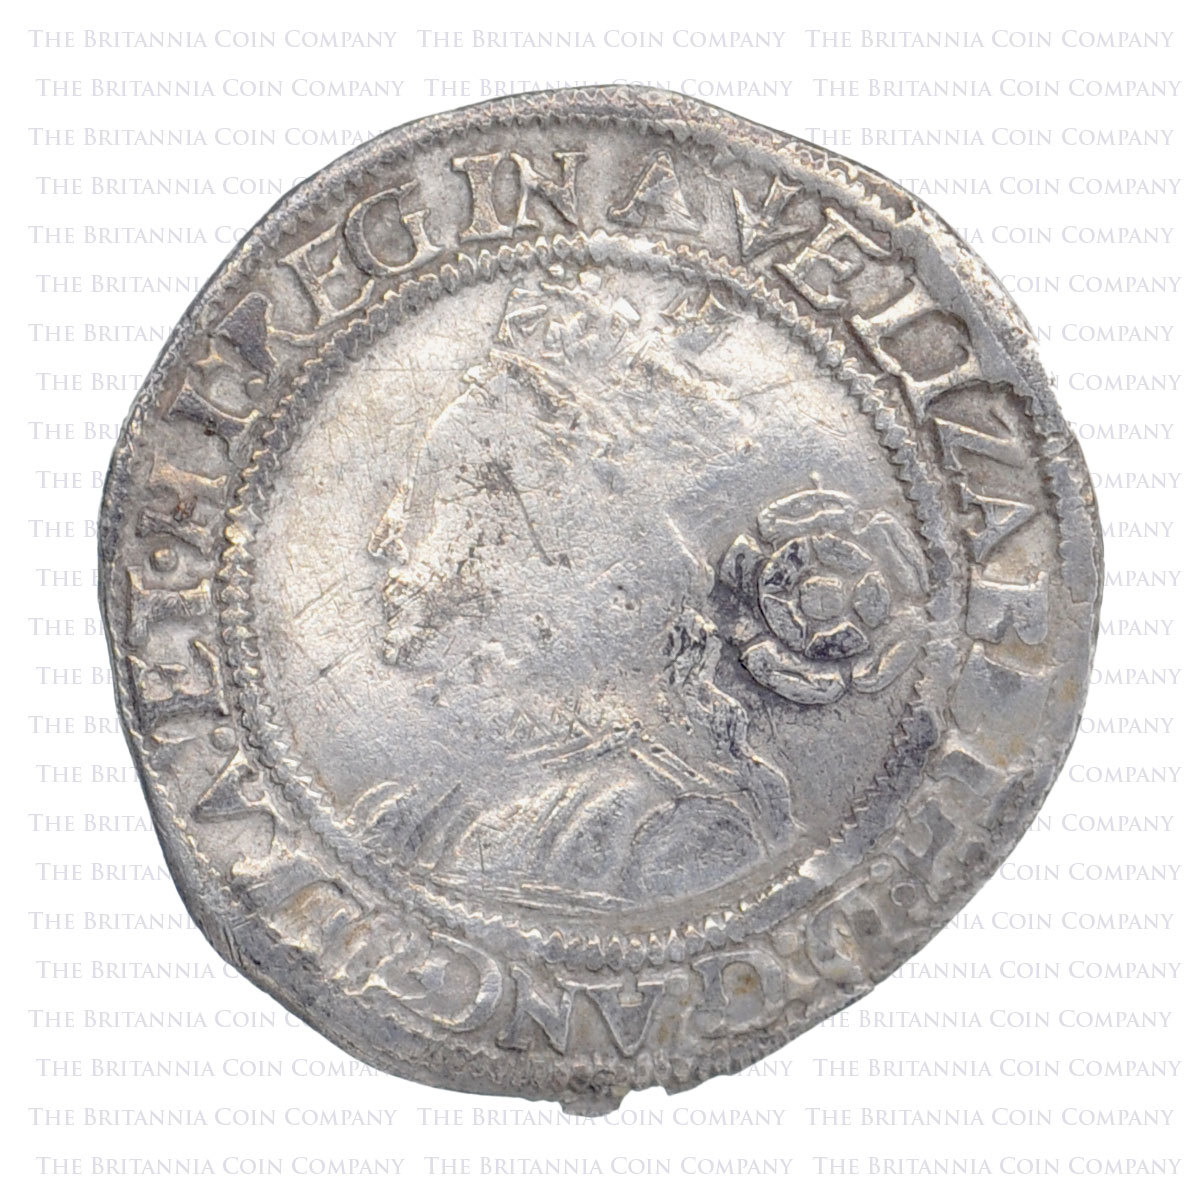 1561 Elizabeth I Hammered Silver Threepence MM 'Pheon' Obverse